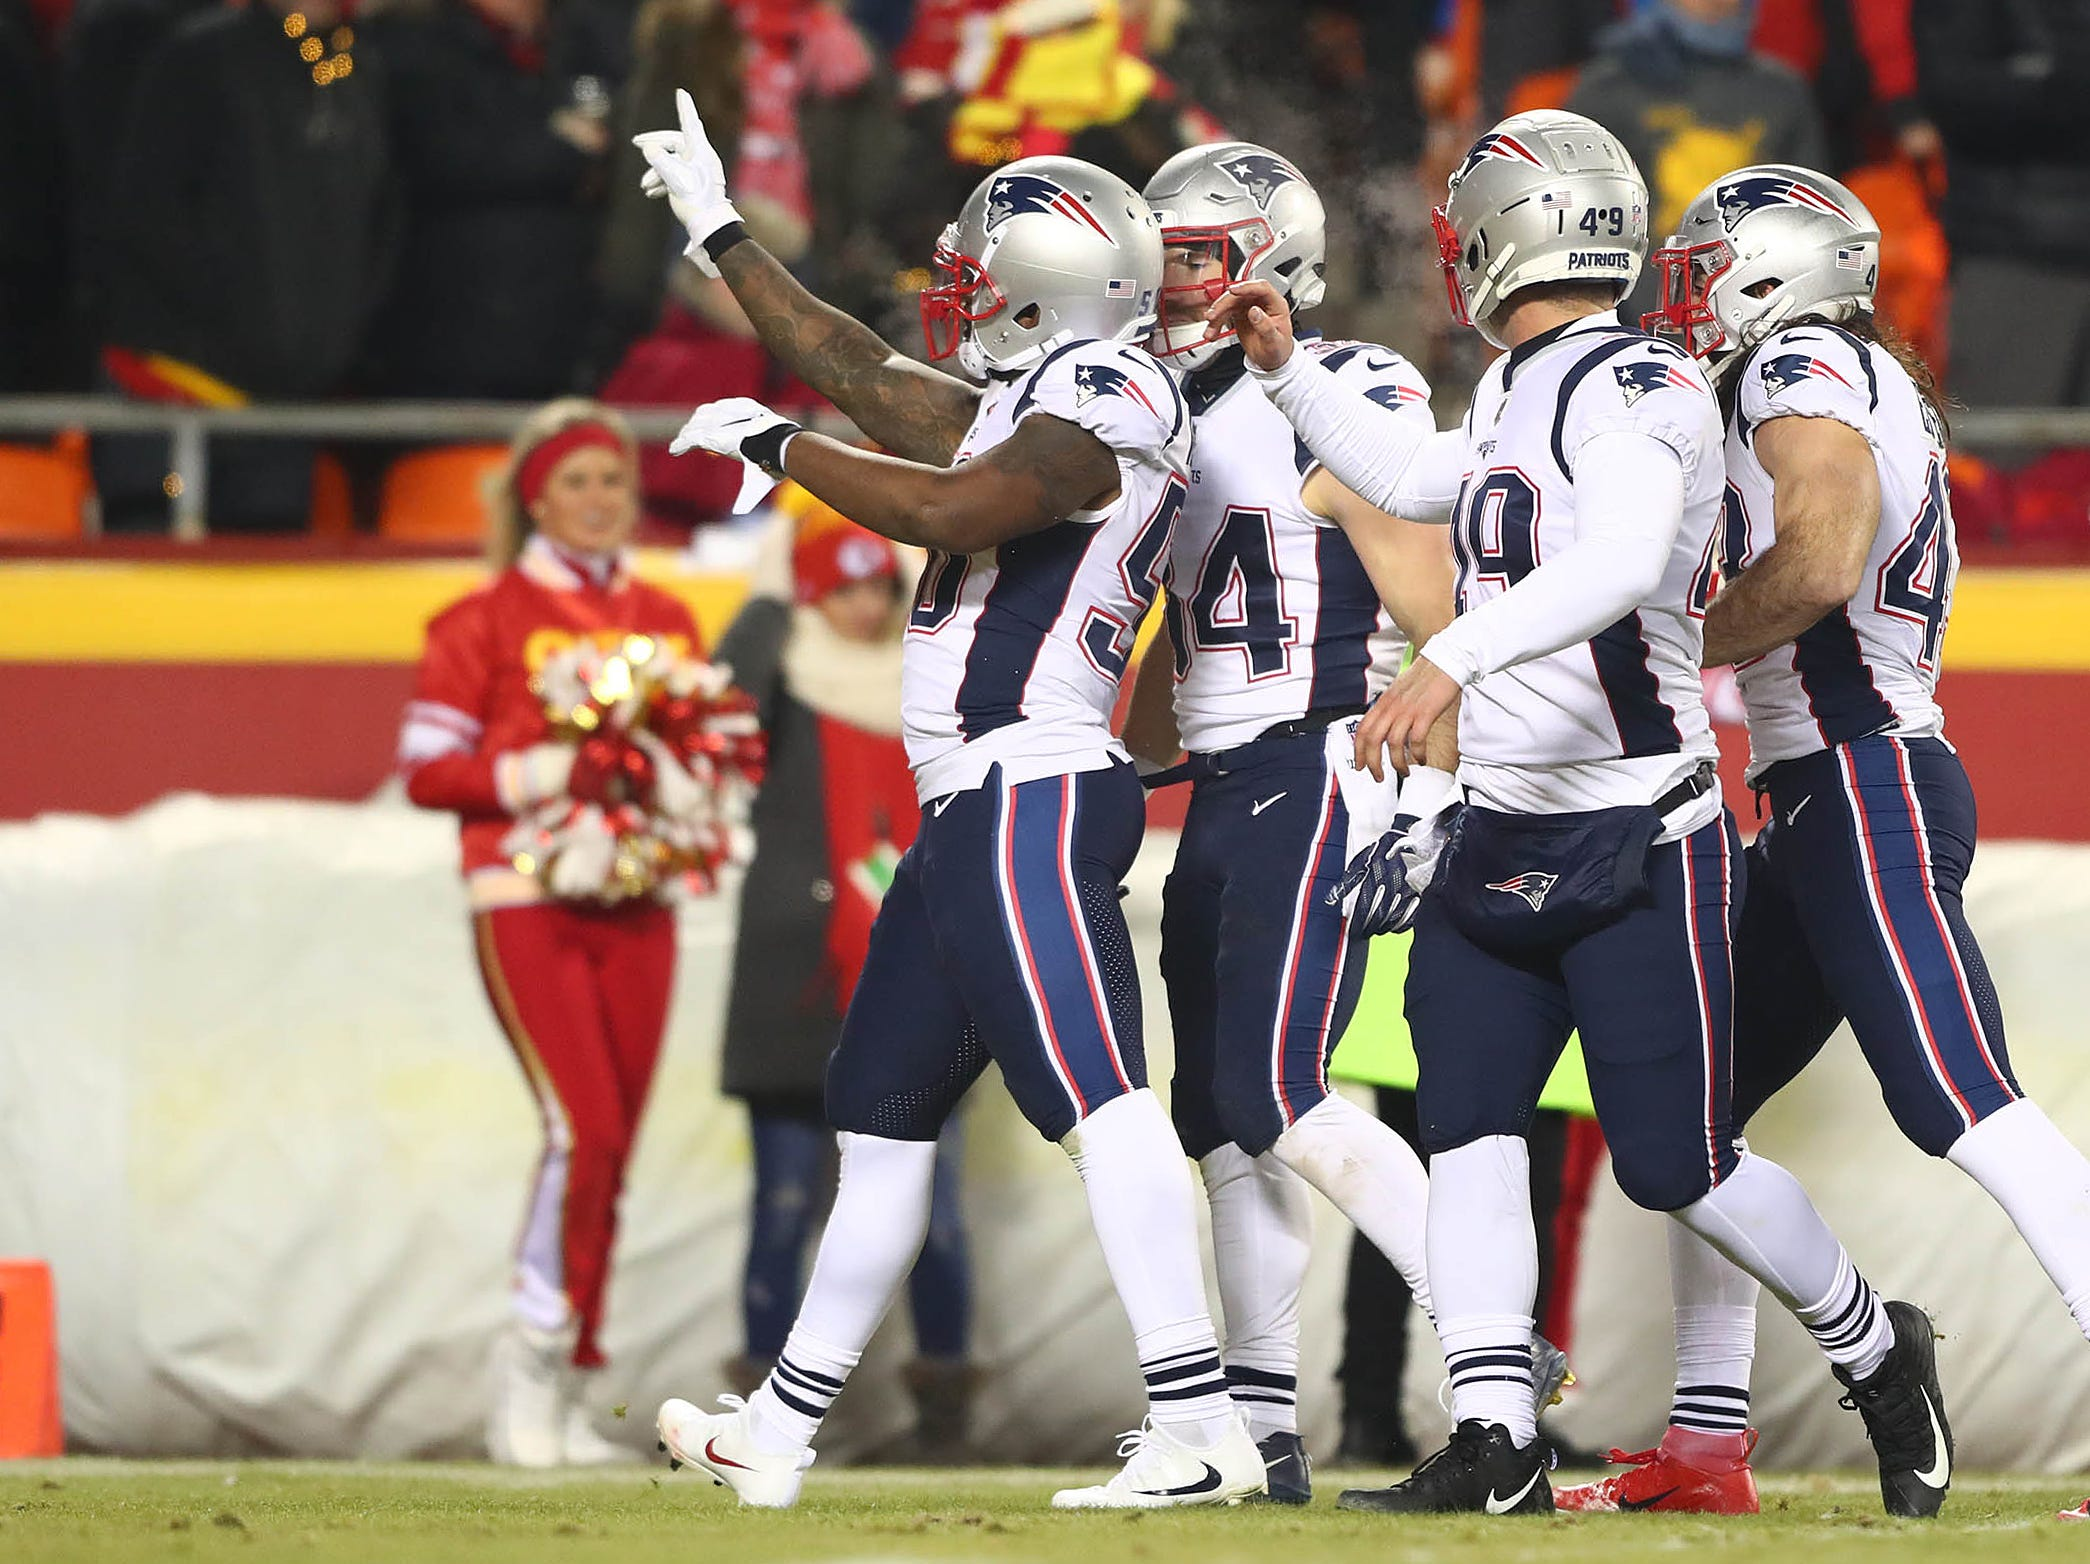 New England Patriots linebacker Ramon Humber (50) reacts during the second half of the AFC Championship Game against the Kansas City Chiefs at Arrowhead Stadium.